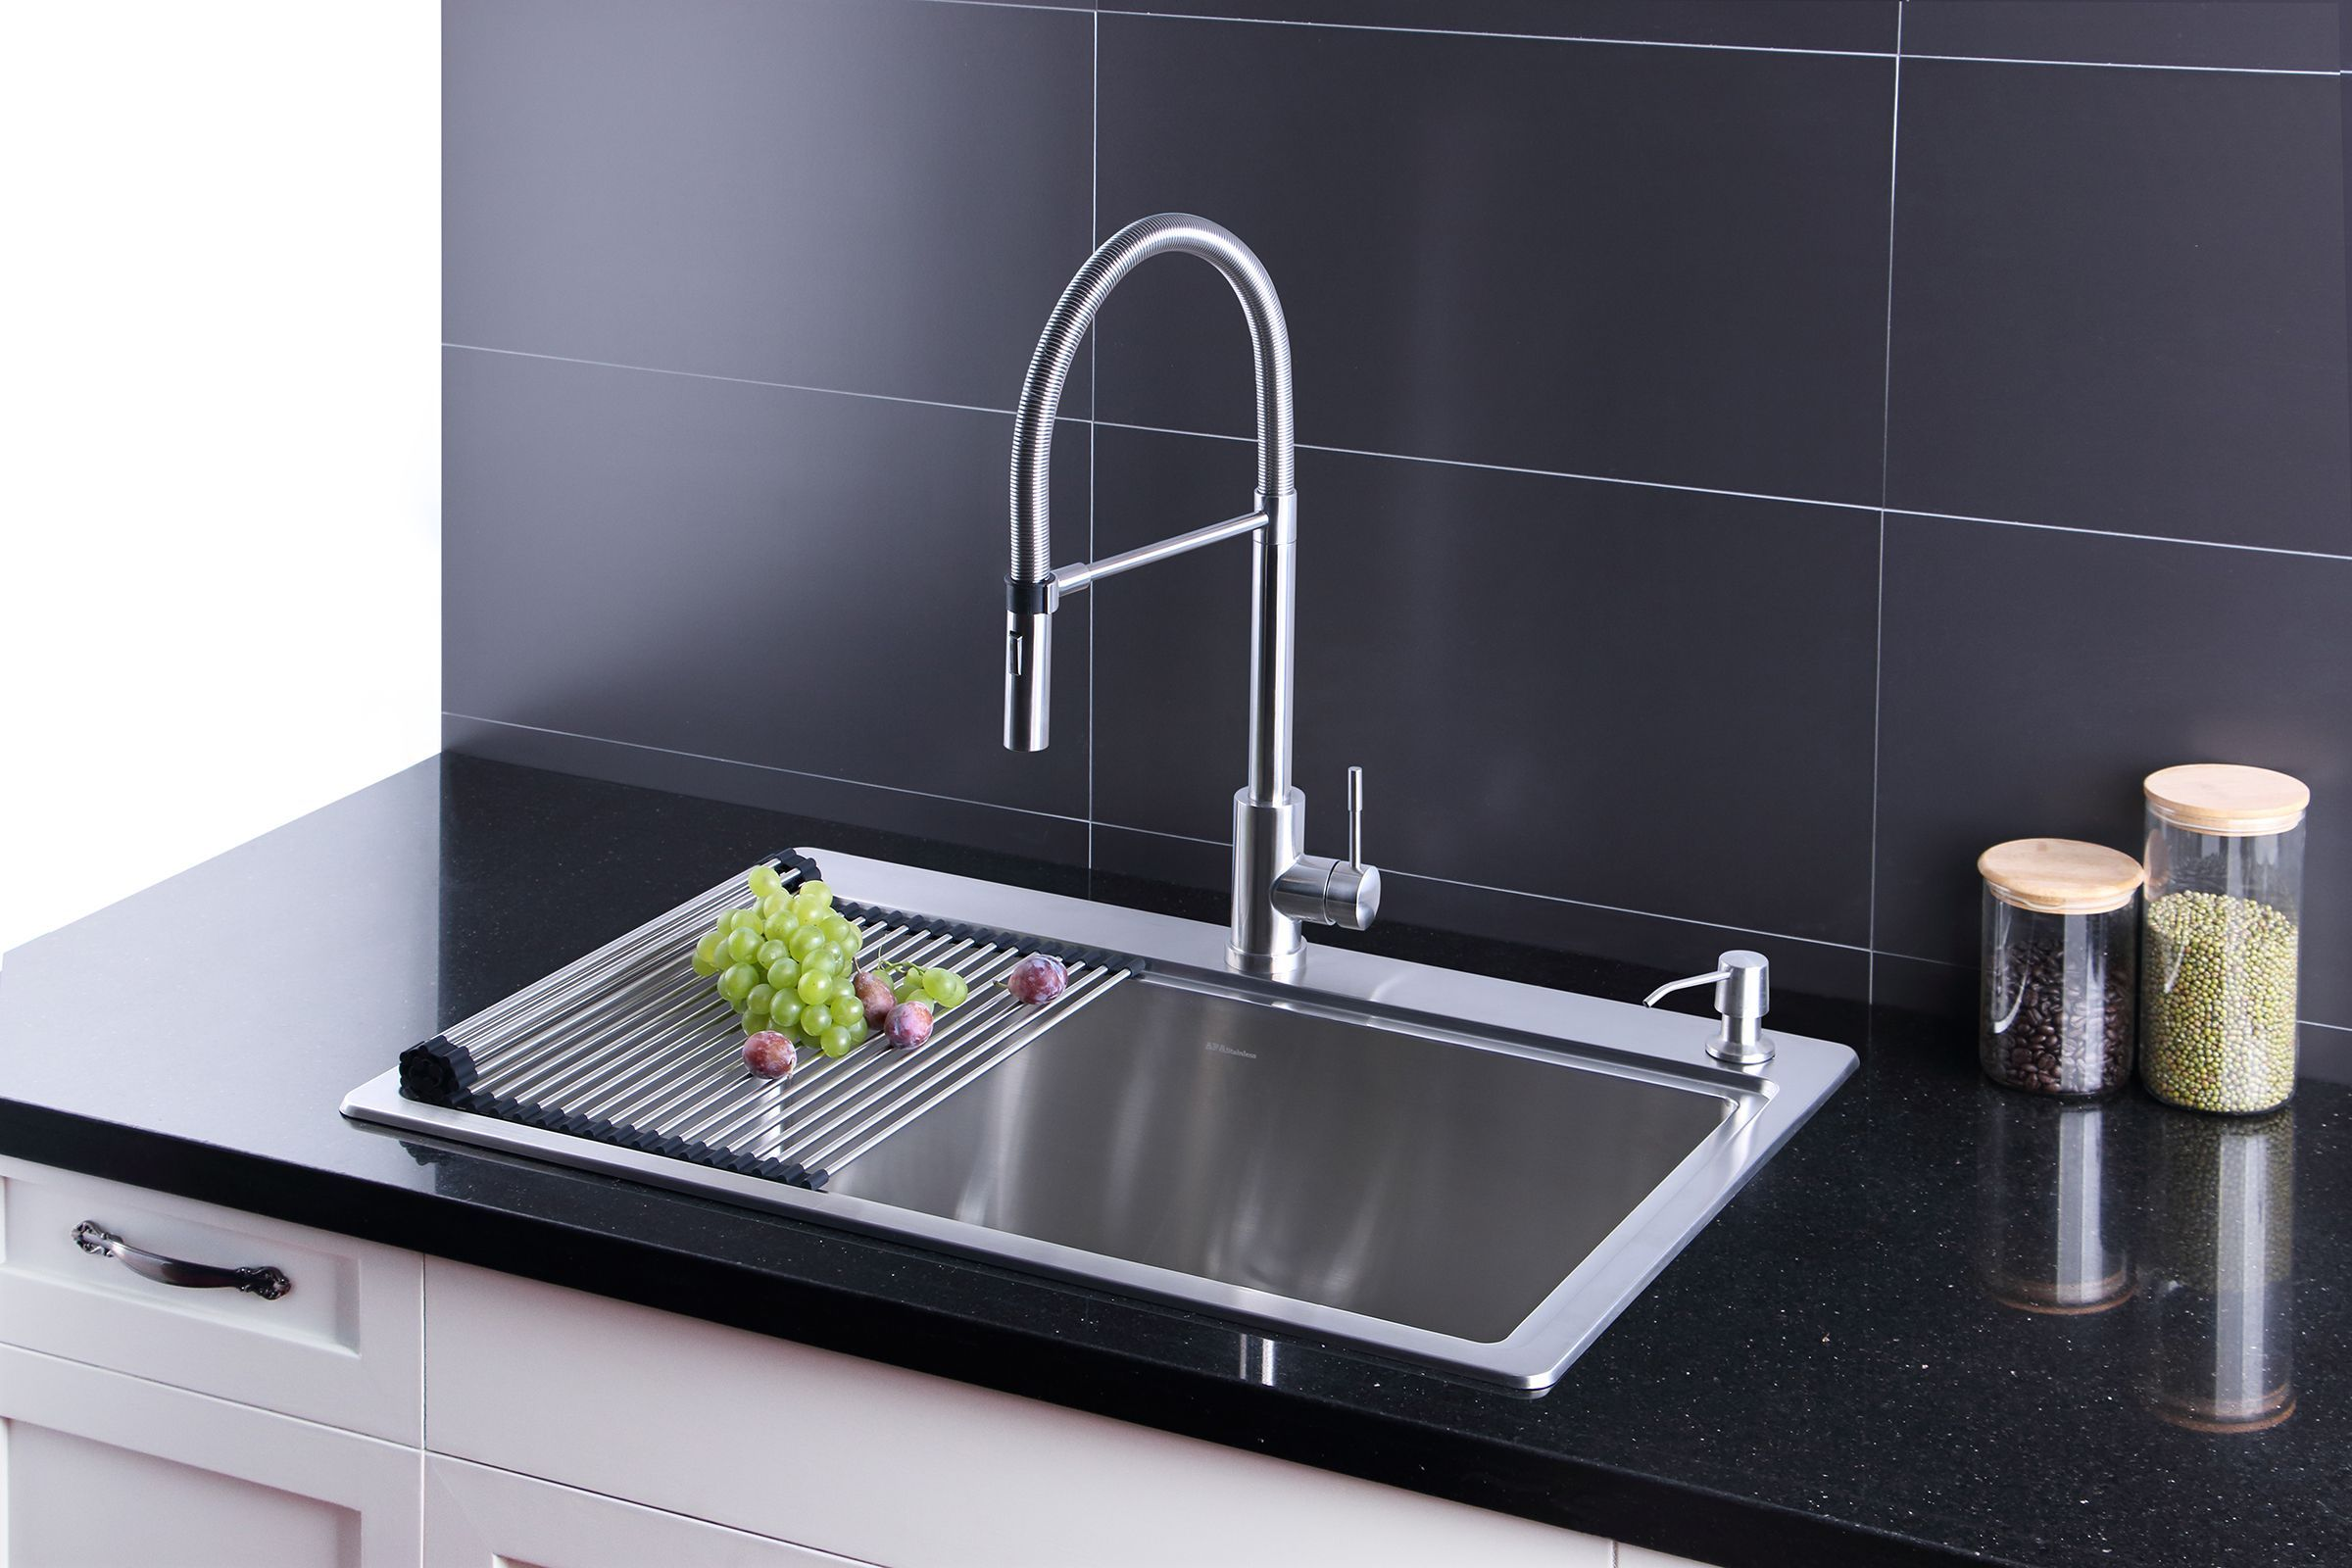 AFA Stainless 33inch Sink and Semi Pro Faucet Combo